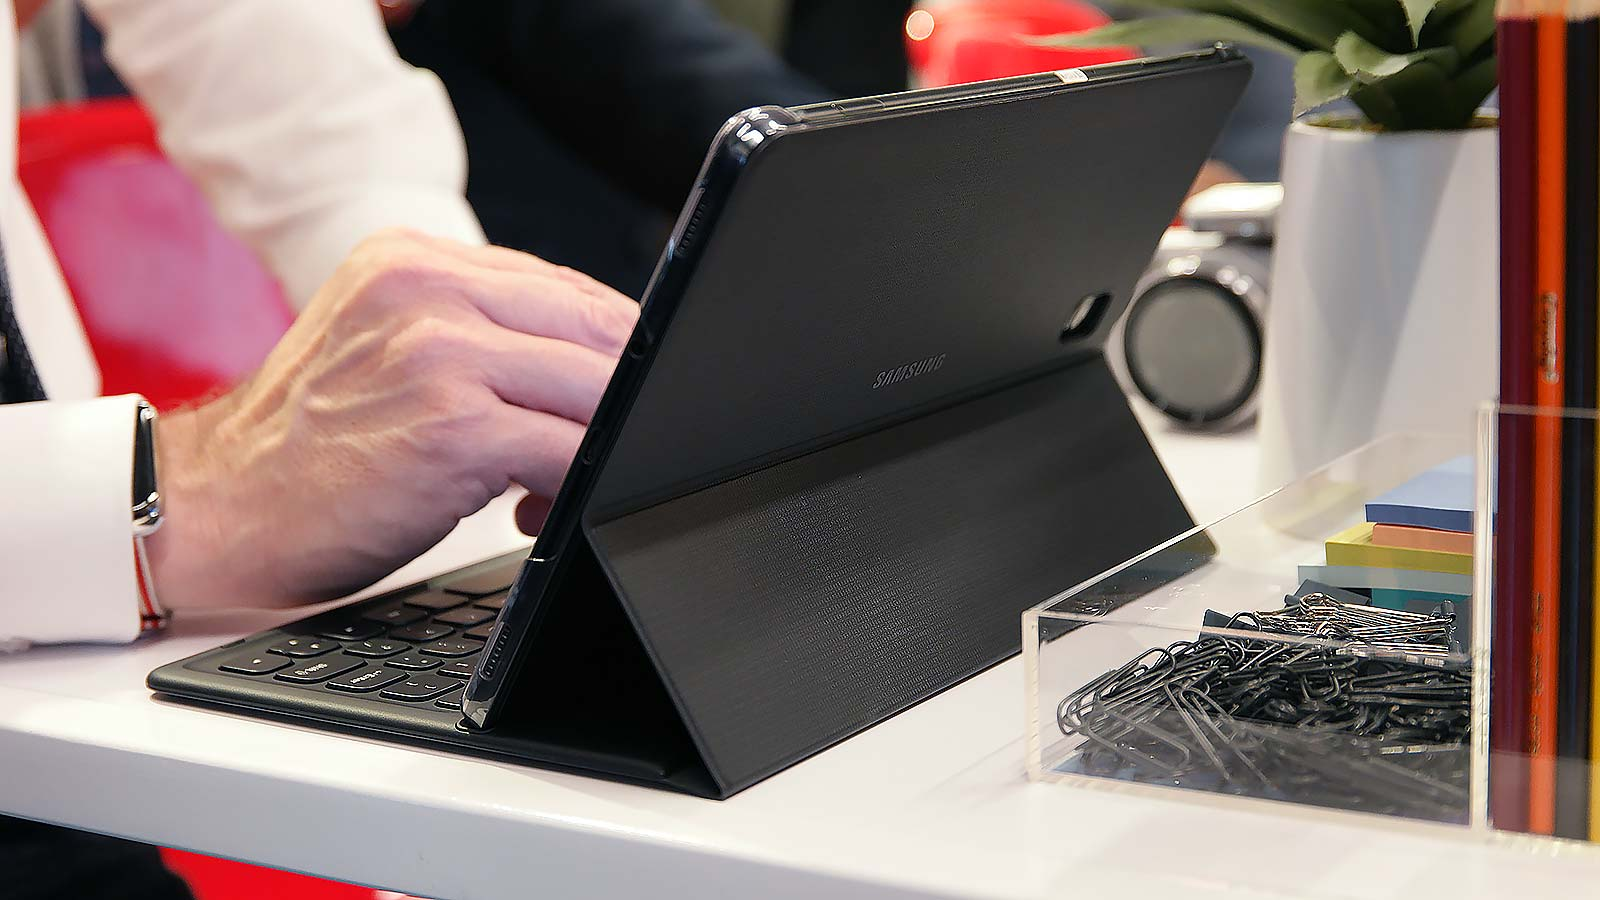 The optional keyboard cover connects via magnetic pogo pins and sports a pretty comfy keyboard, but the lack of a touchpad seems like a mistake